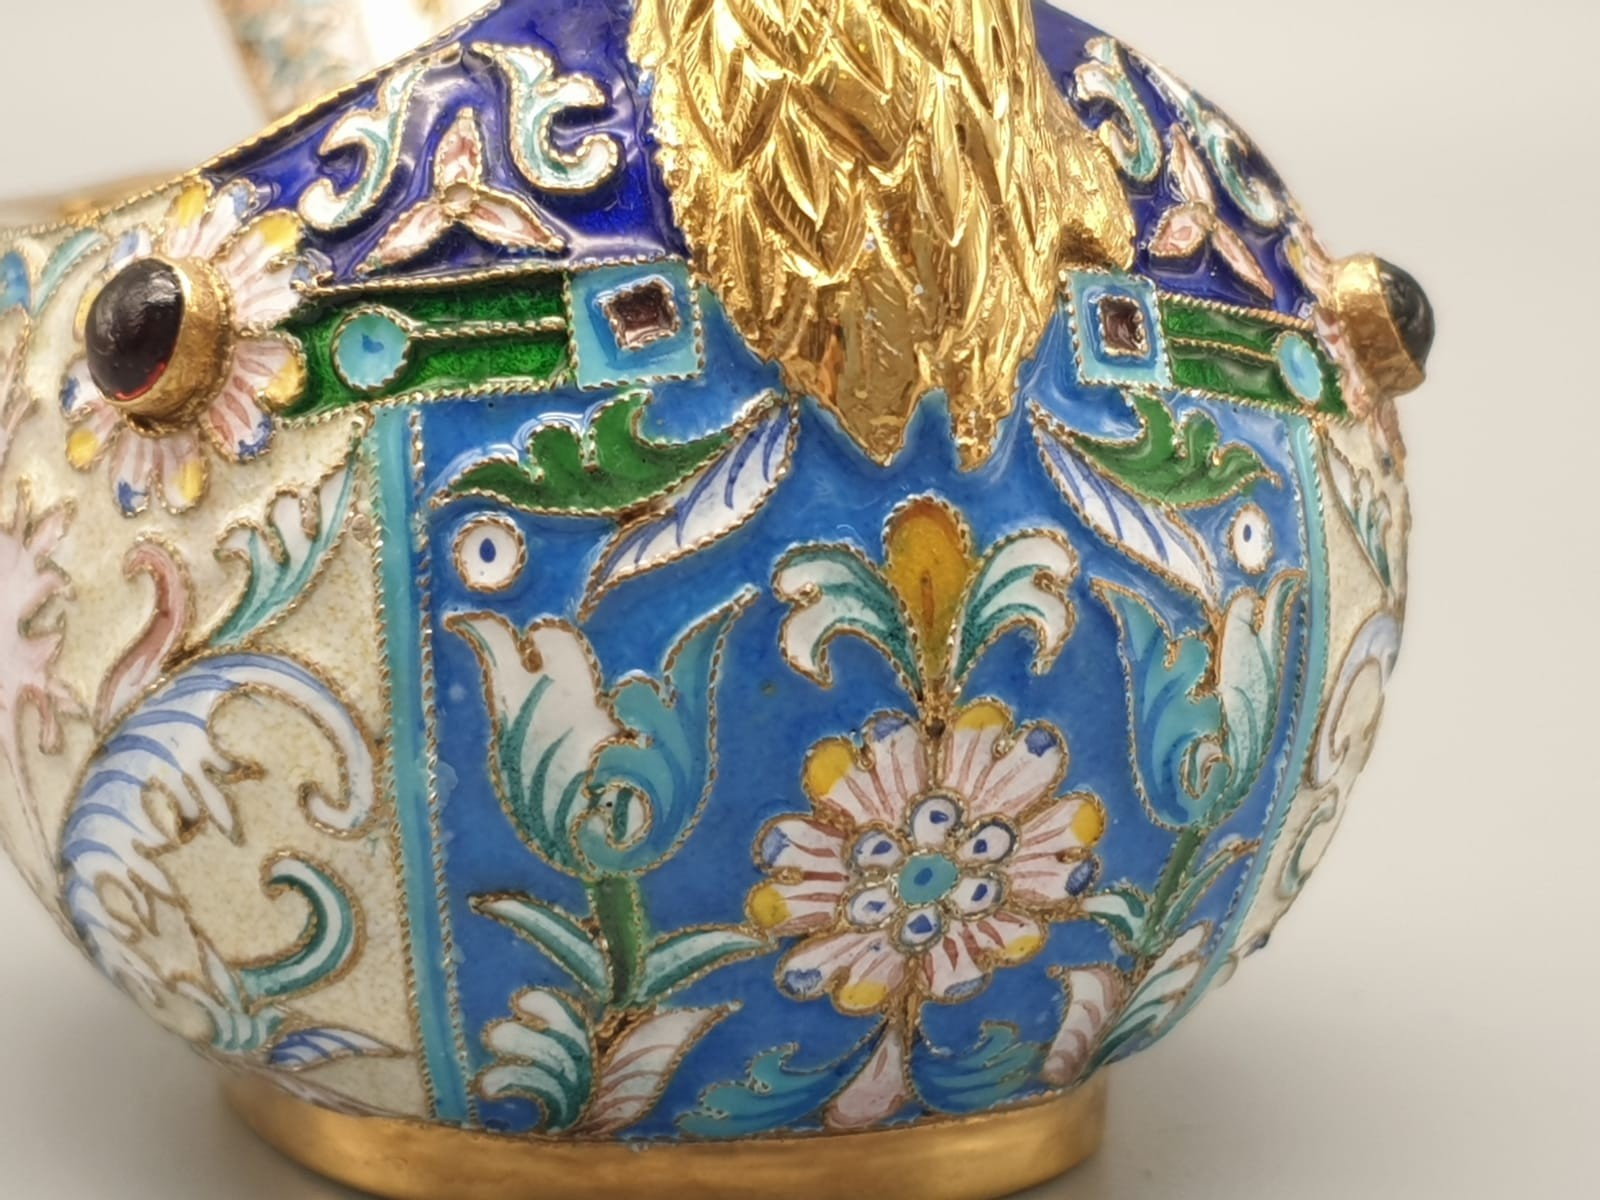 Pair of Russian 20th century silver enamel gemset kavosch bowl in the form of birds, an exquisite - Image 6 of 29